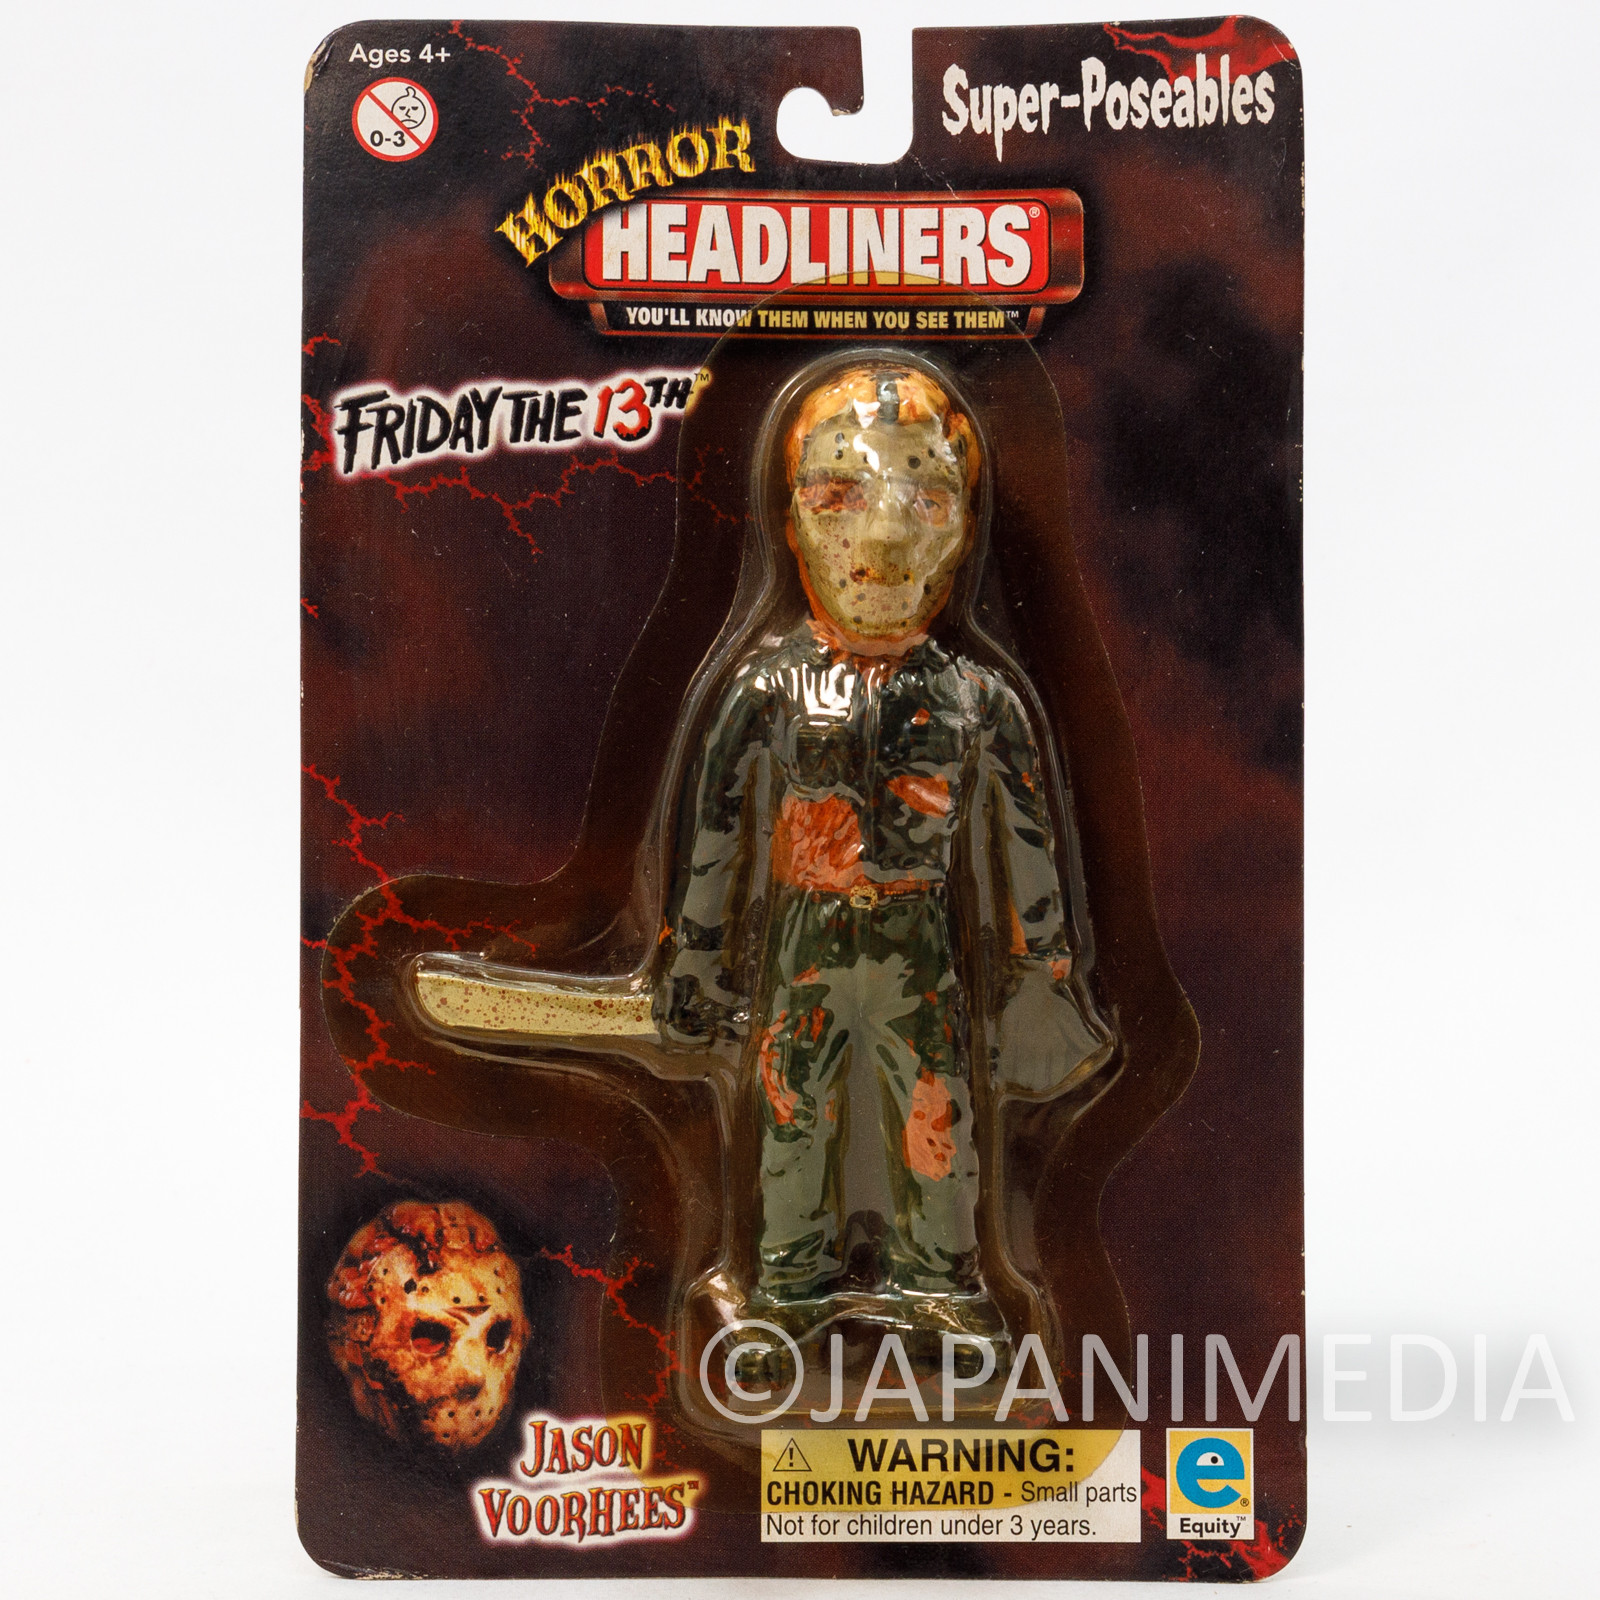 Friday The 13th JASON VOORHEES Super Poseable Figure Horror Headliners